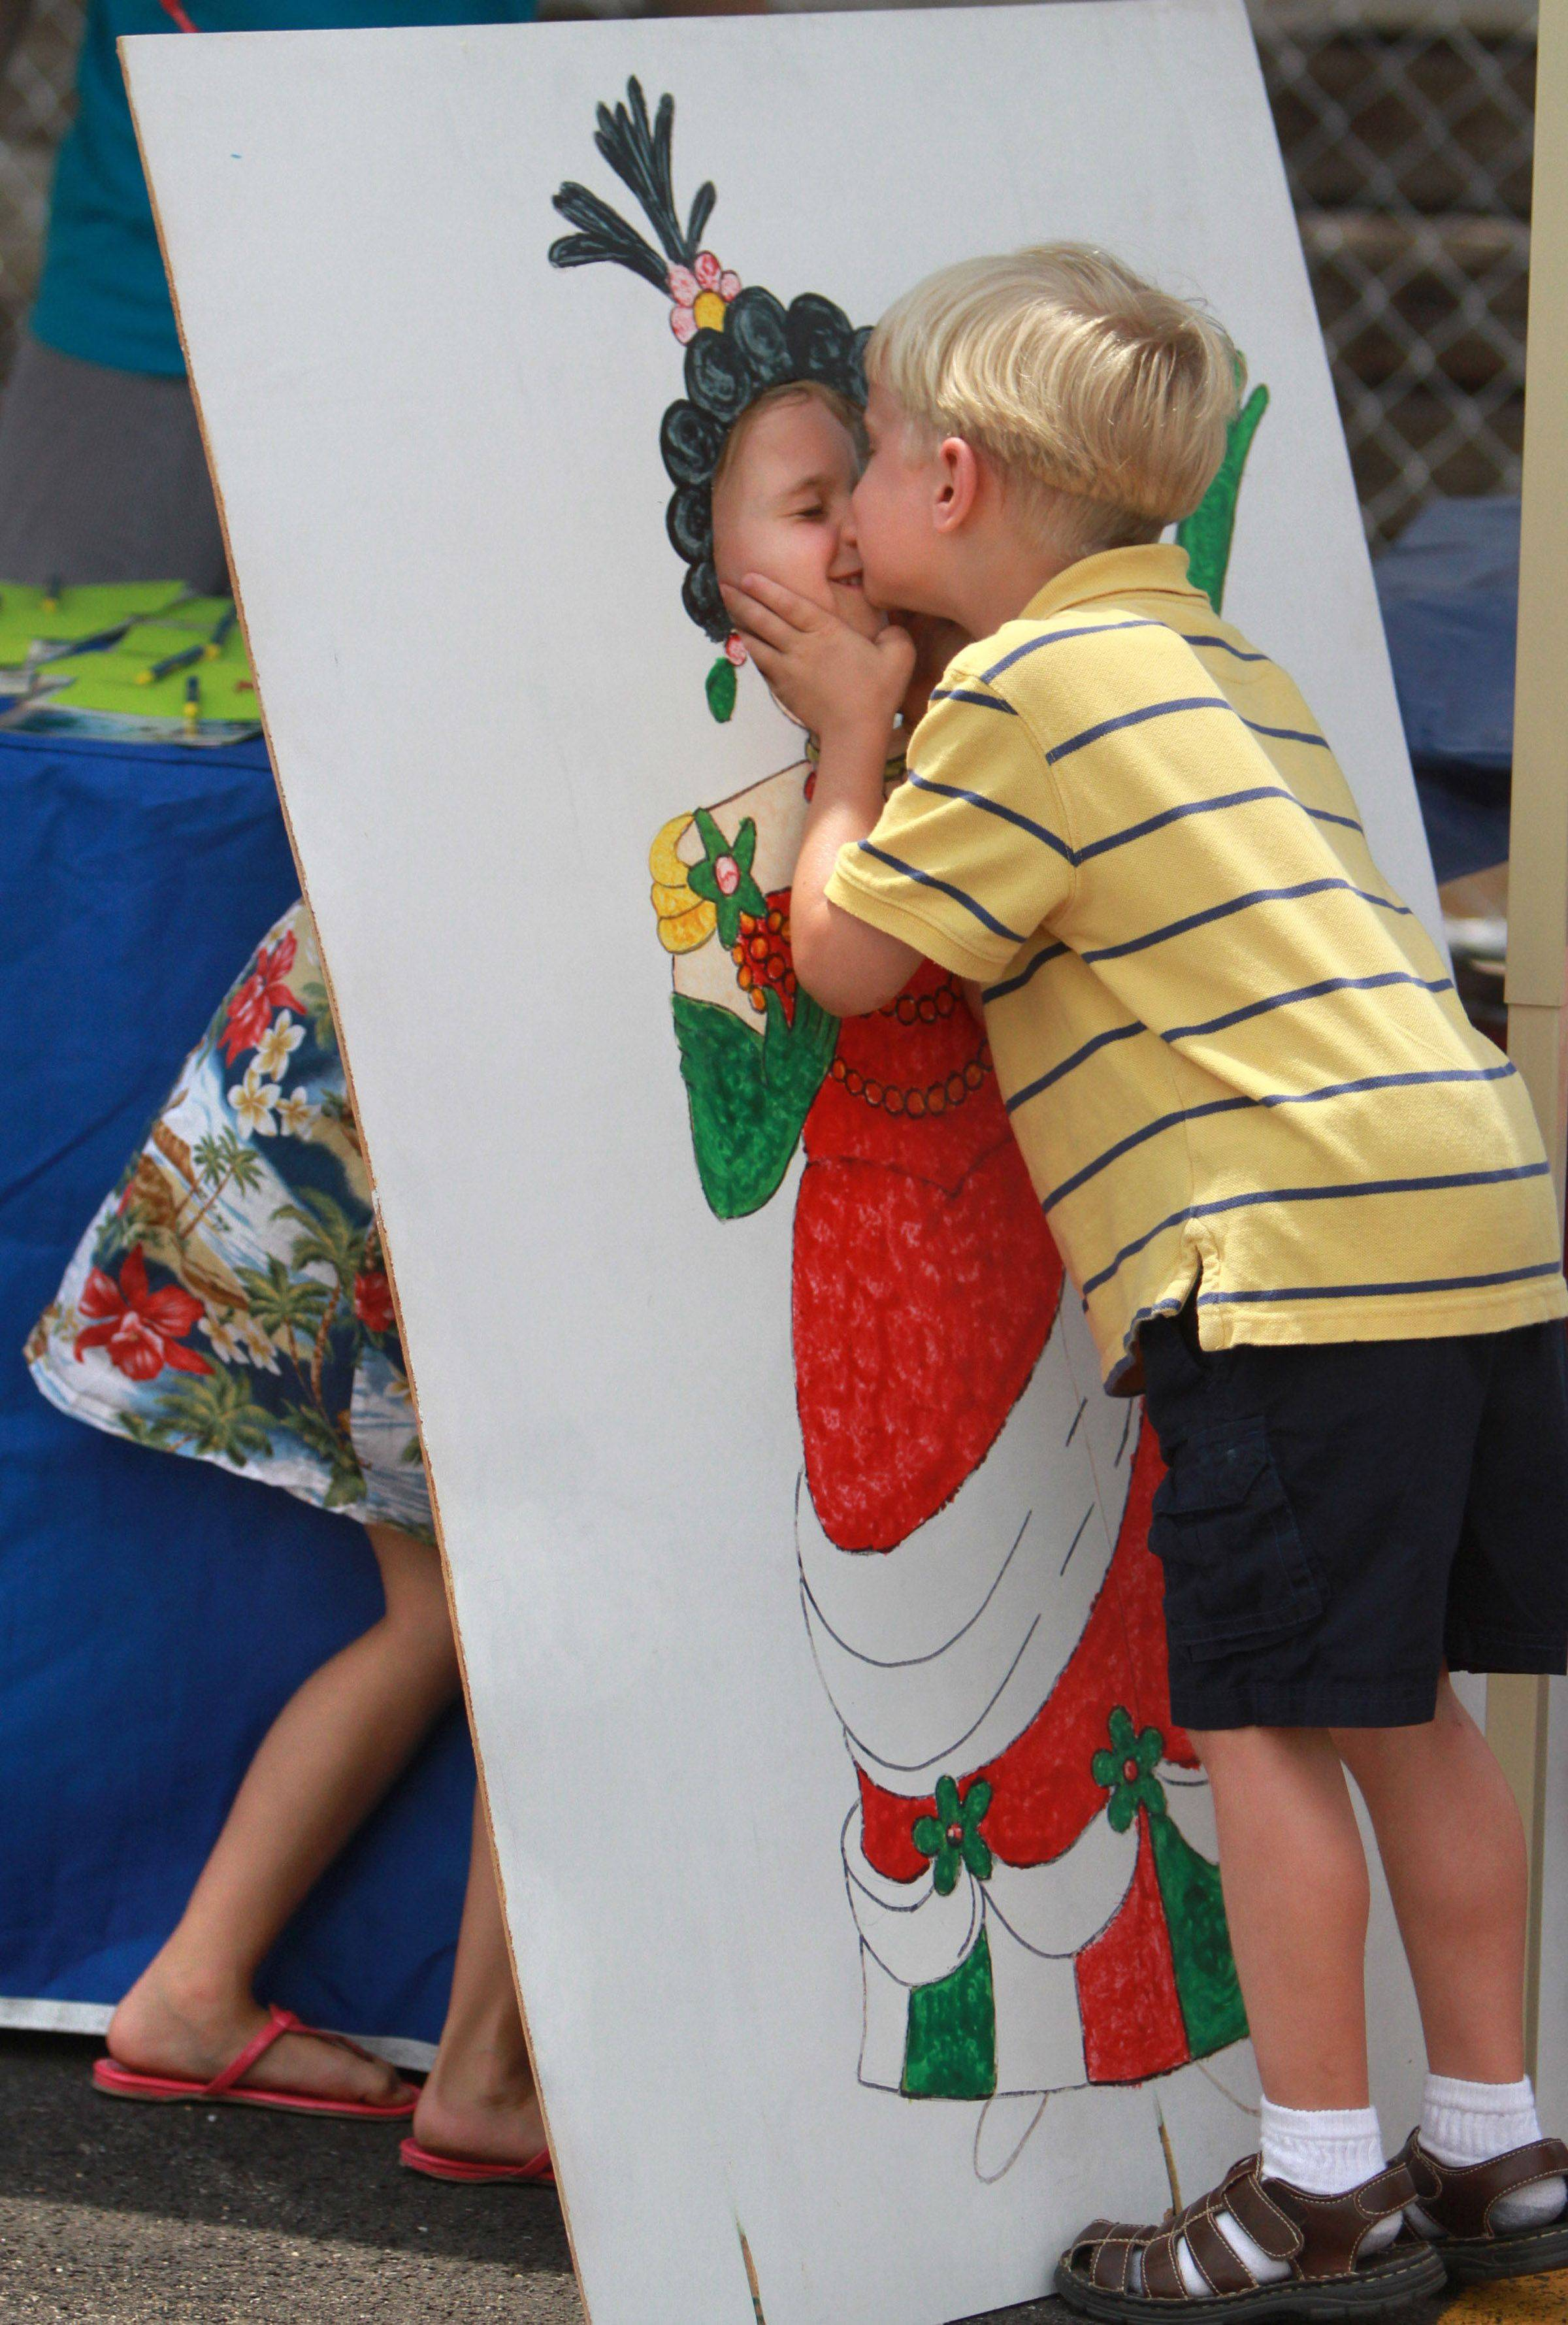 George Tarulis, 6, of Barrington Hills gives his twin sister a kiss through a photo face cutout at International Fest hosted by Barrington Breakfast Rotary Club near the train station in Barrington on Wednesday, June 6th. The one day festival included music, food, and games. July 2011